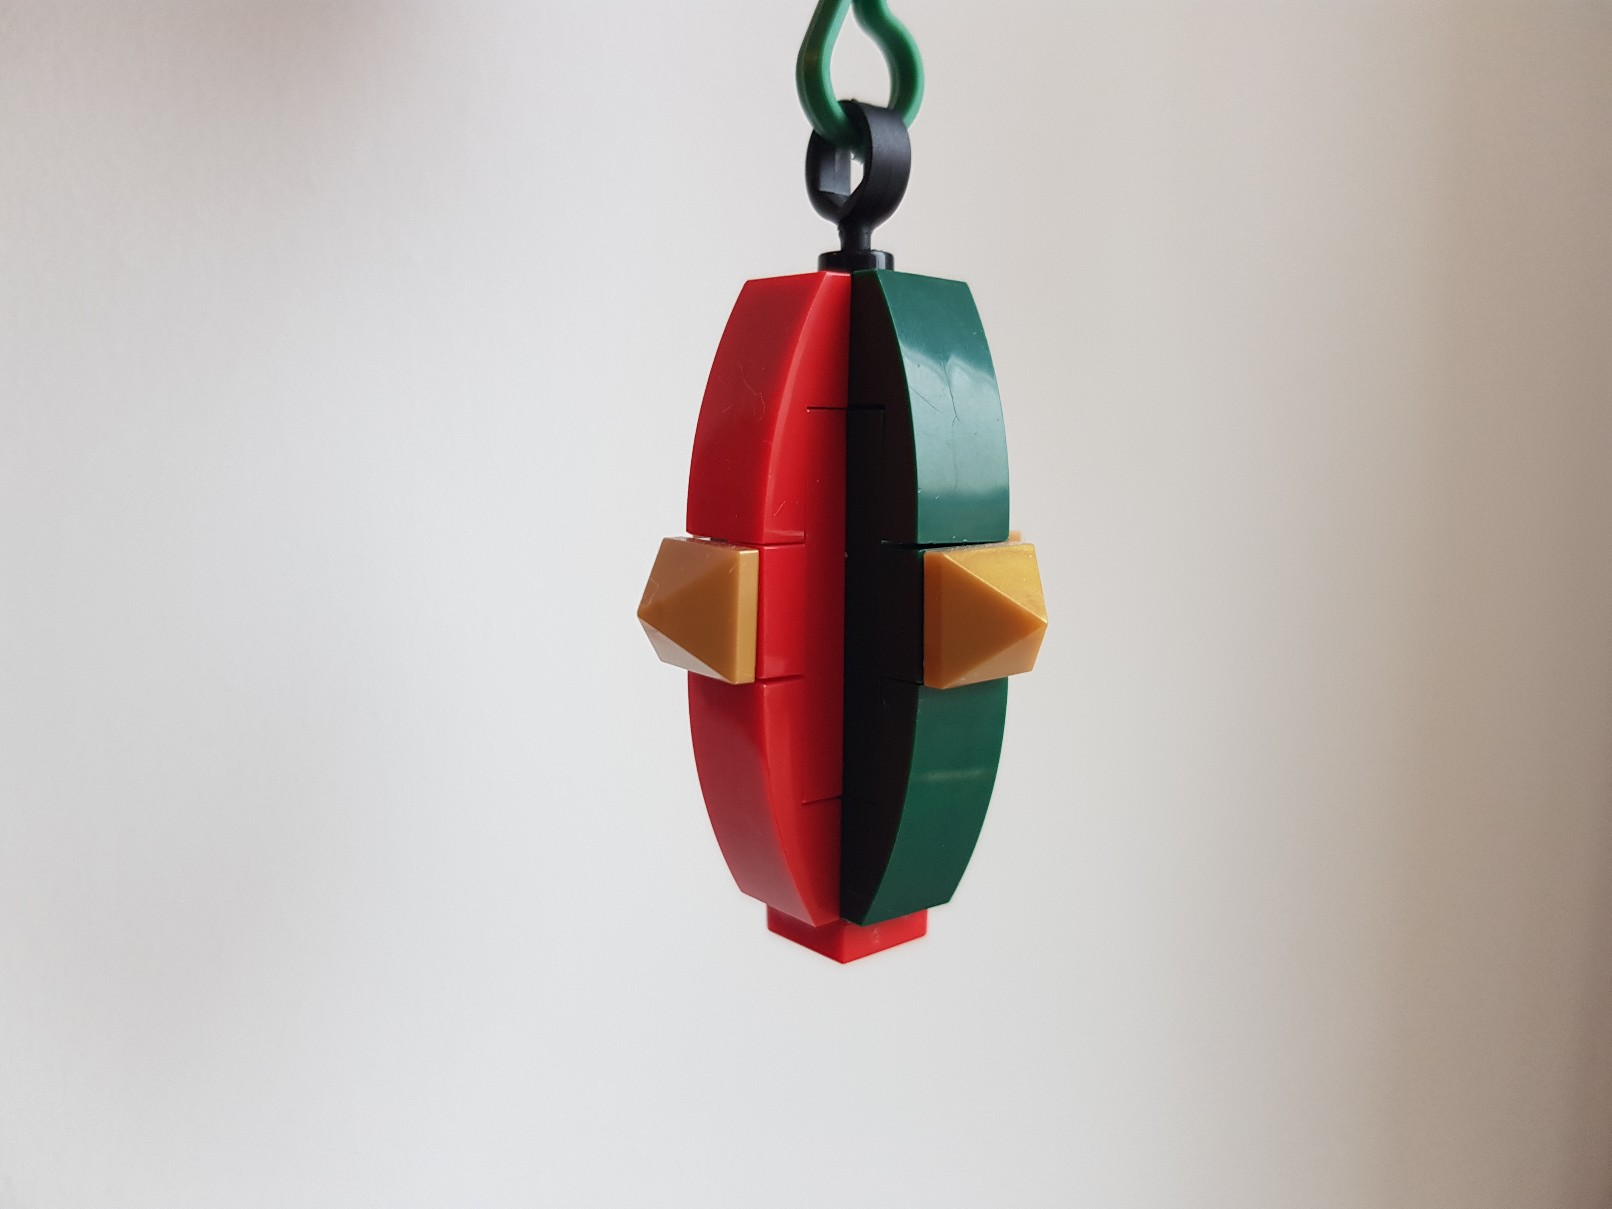 lego moc christmas baubles ornament red green gold 2